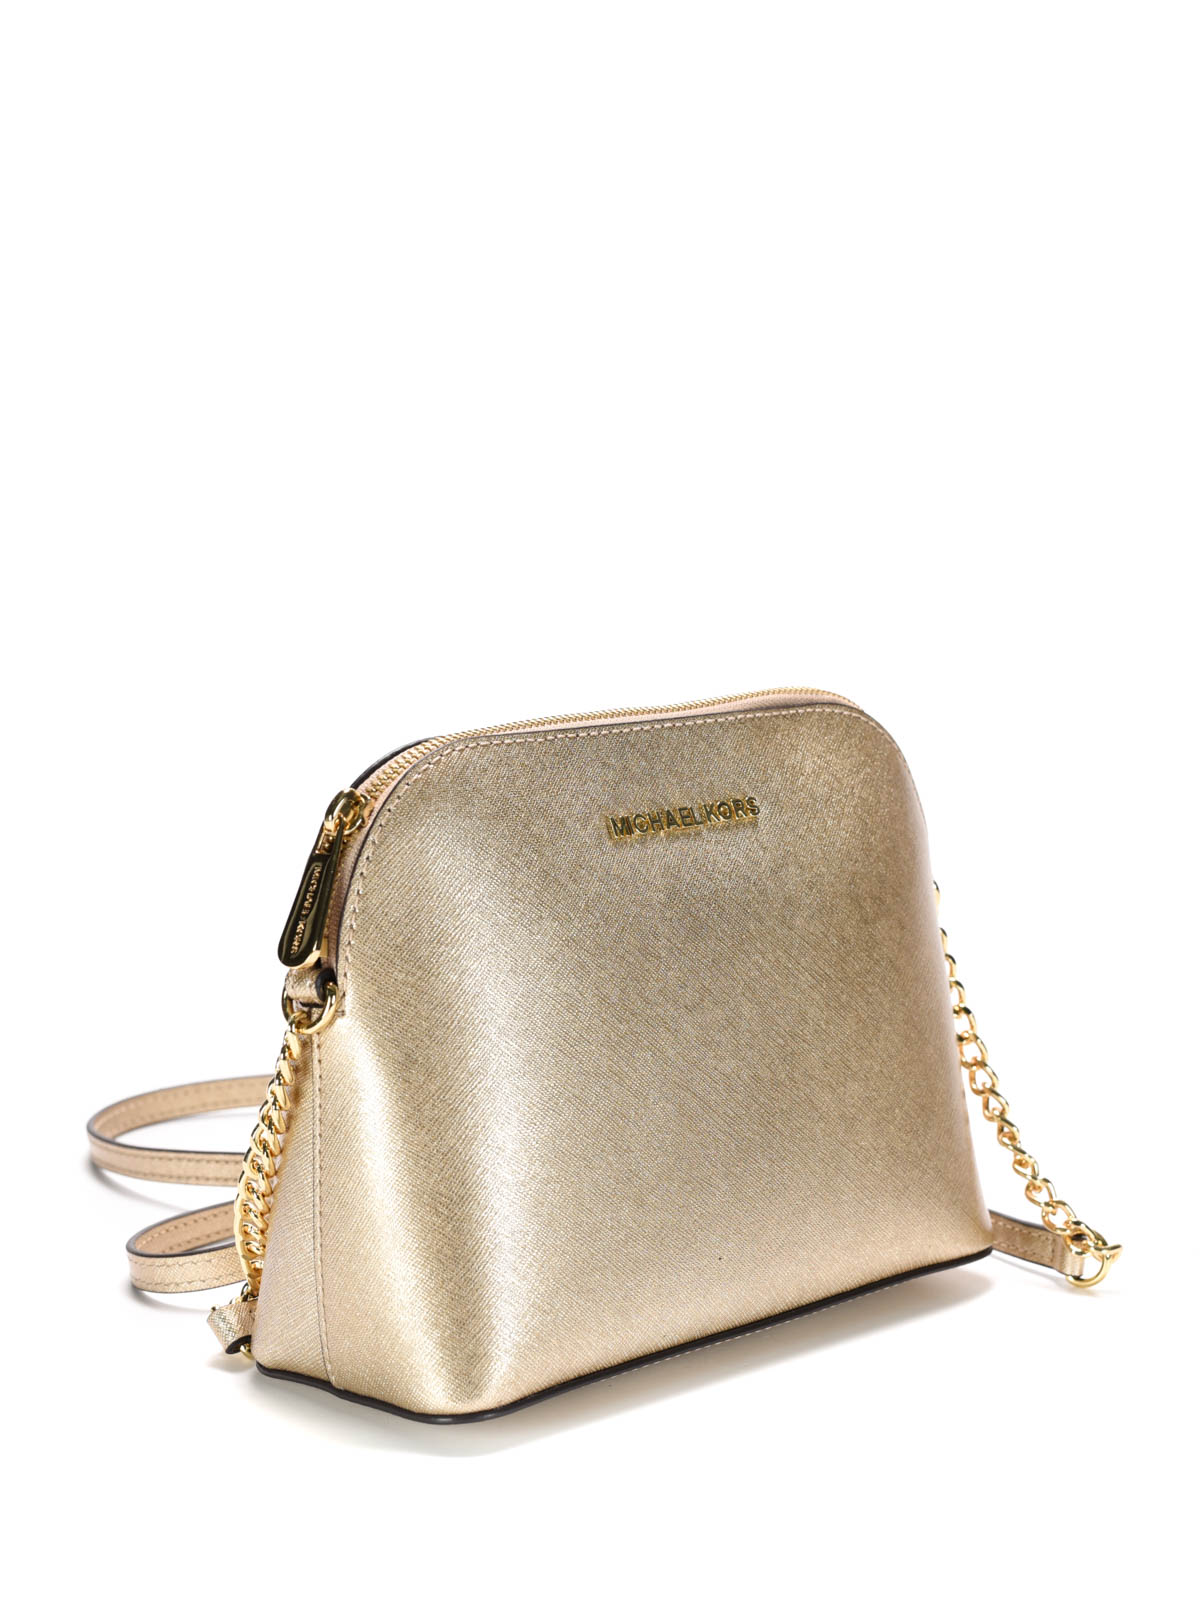 b53e692946217f MICHAEL KORS: cross body bags online - Cindy metallic Saffiano cross body